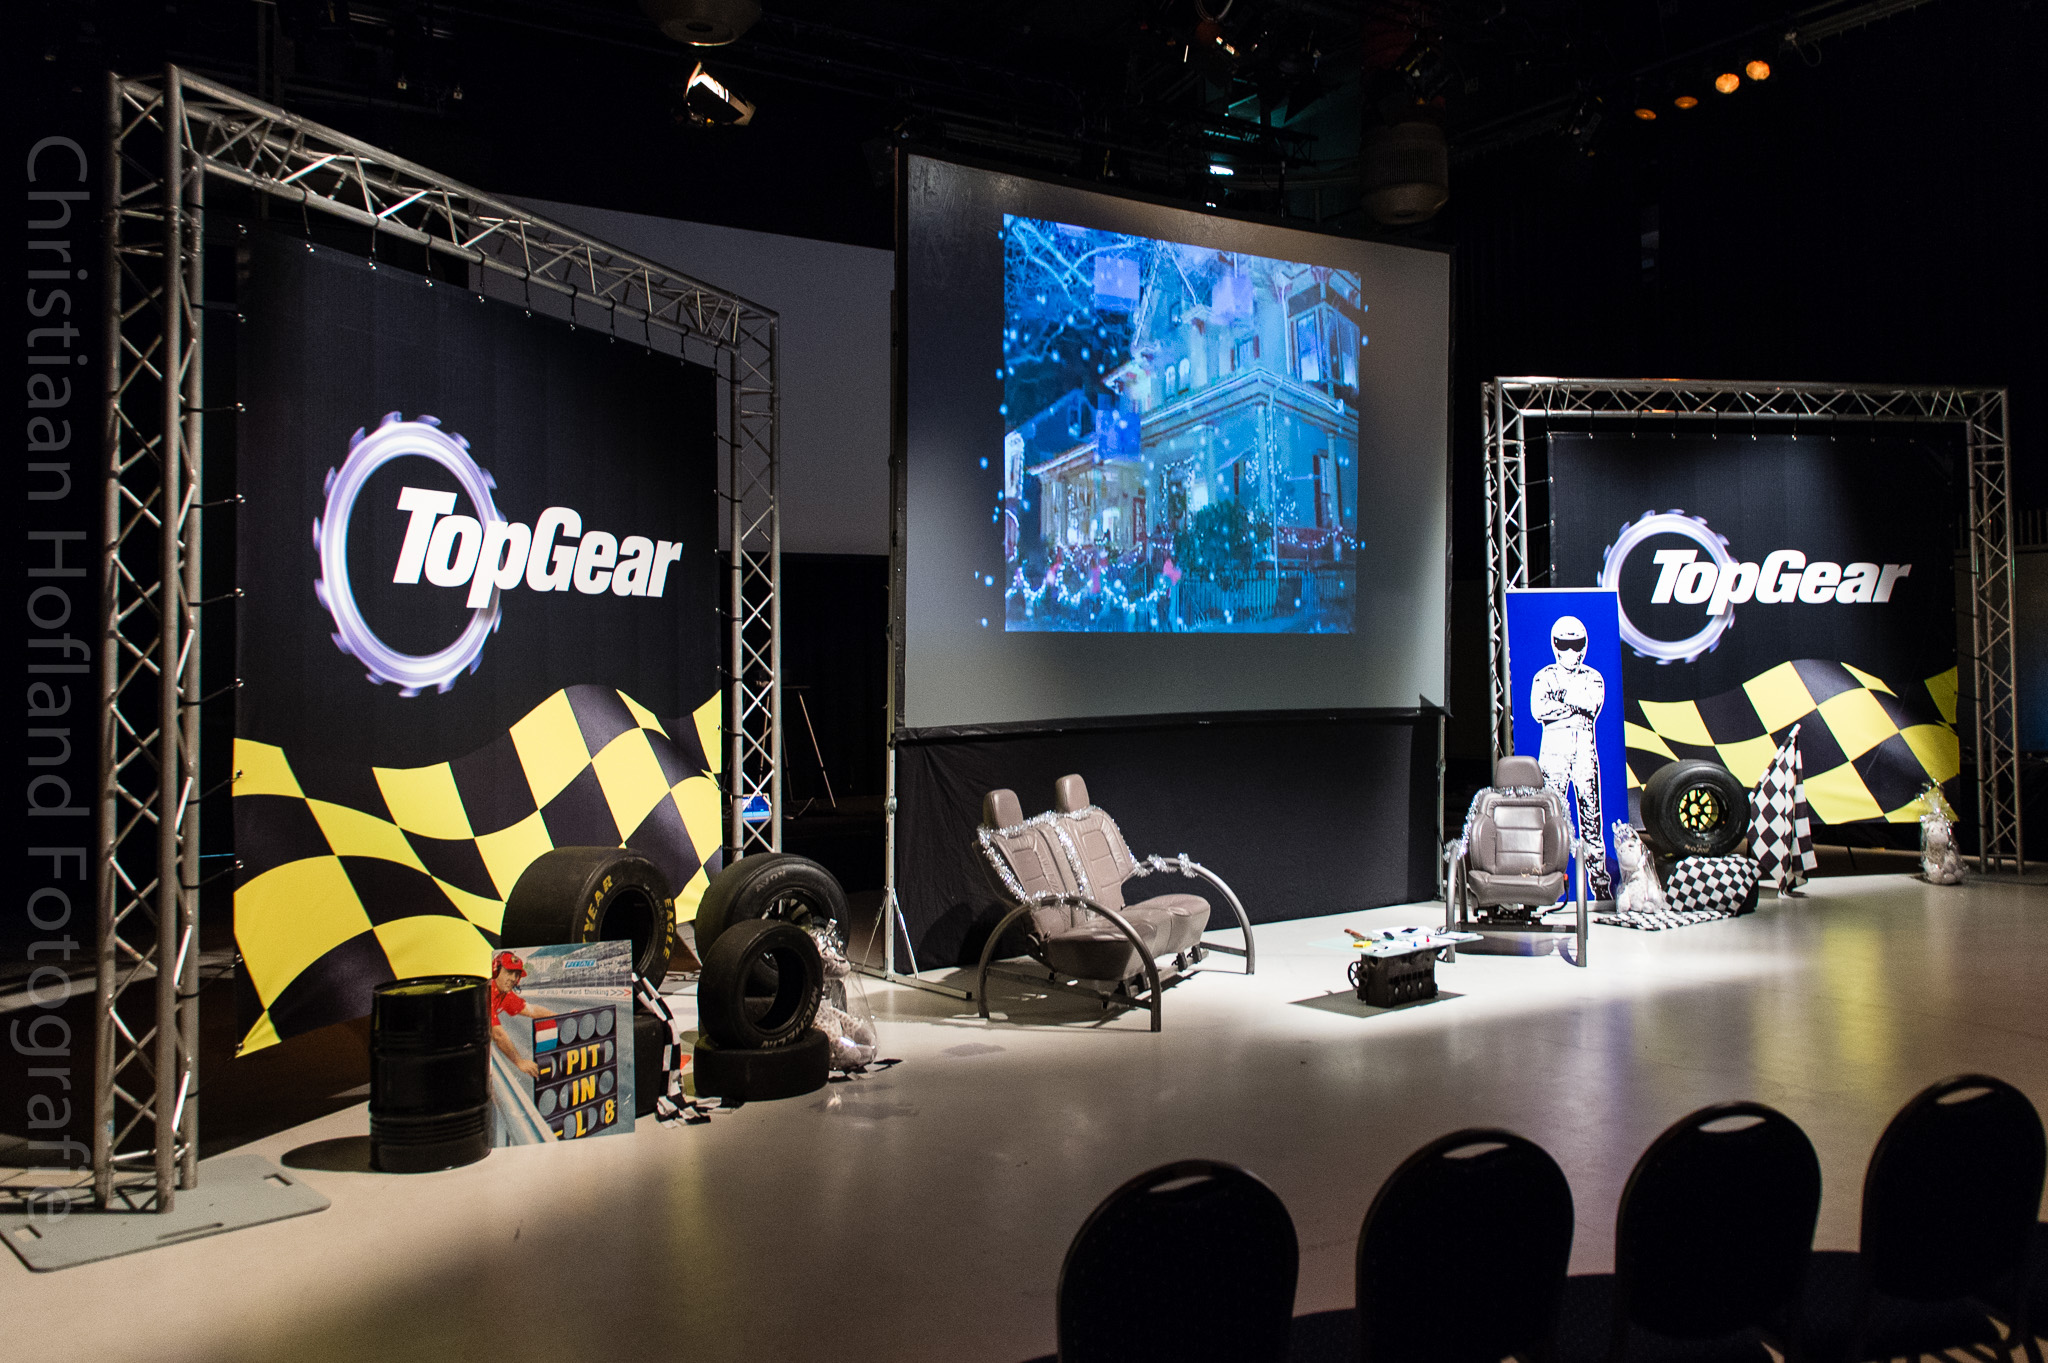 In Top Gear kick off fotoreportage